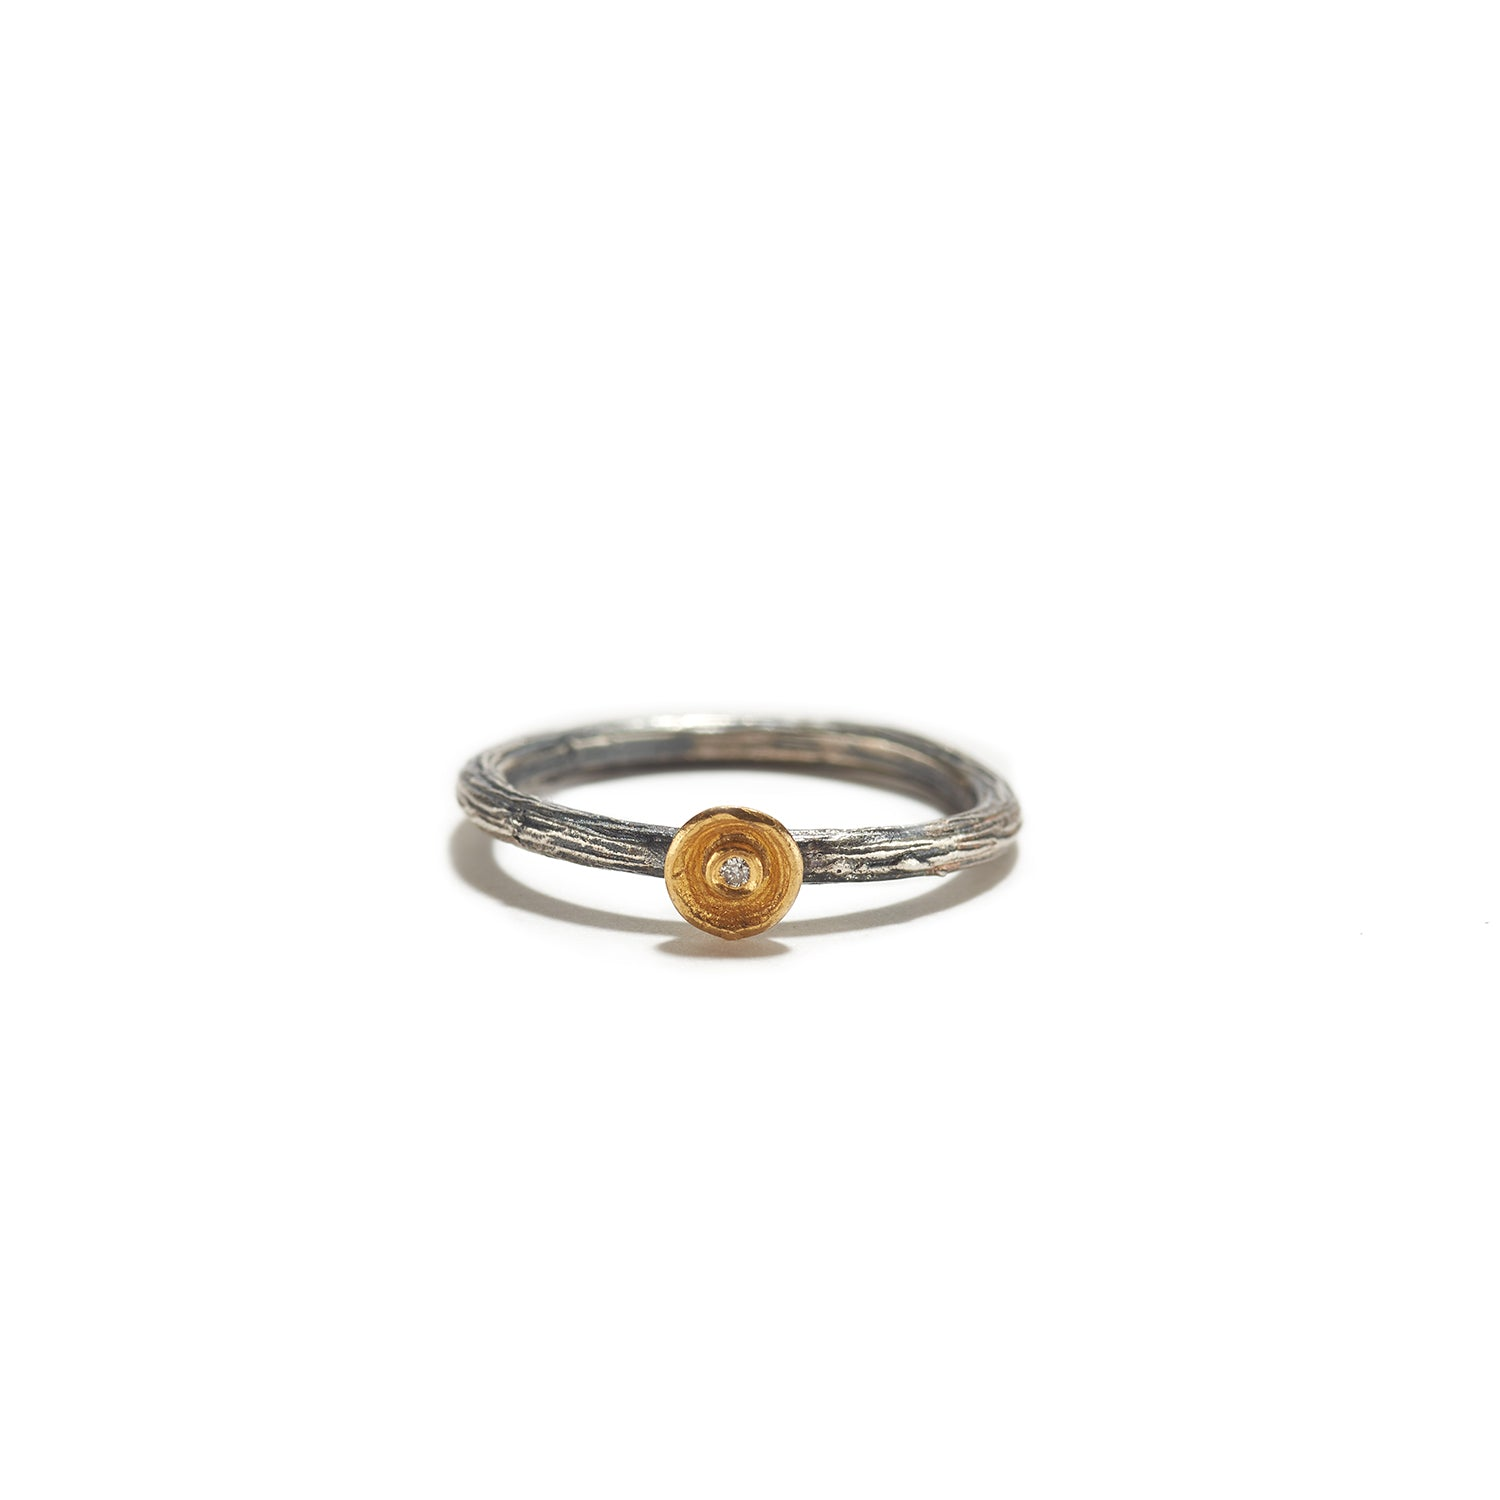 Small Golden Cup with Diamond Ring